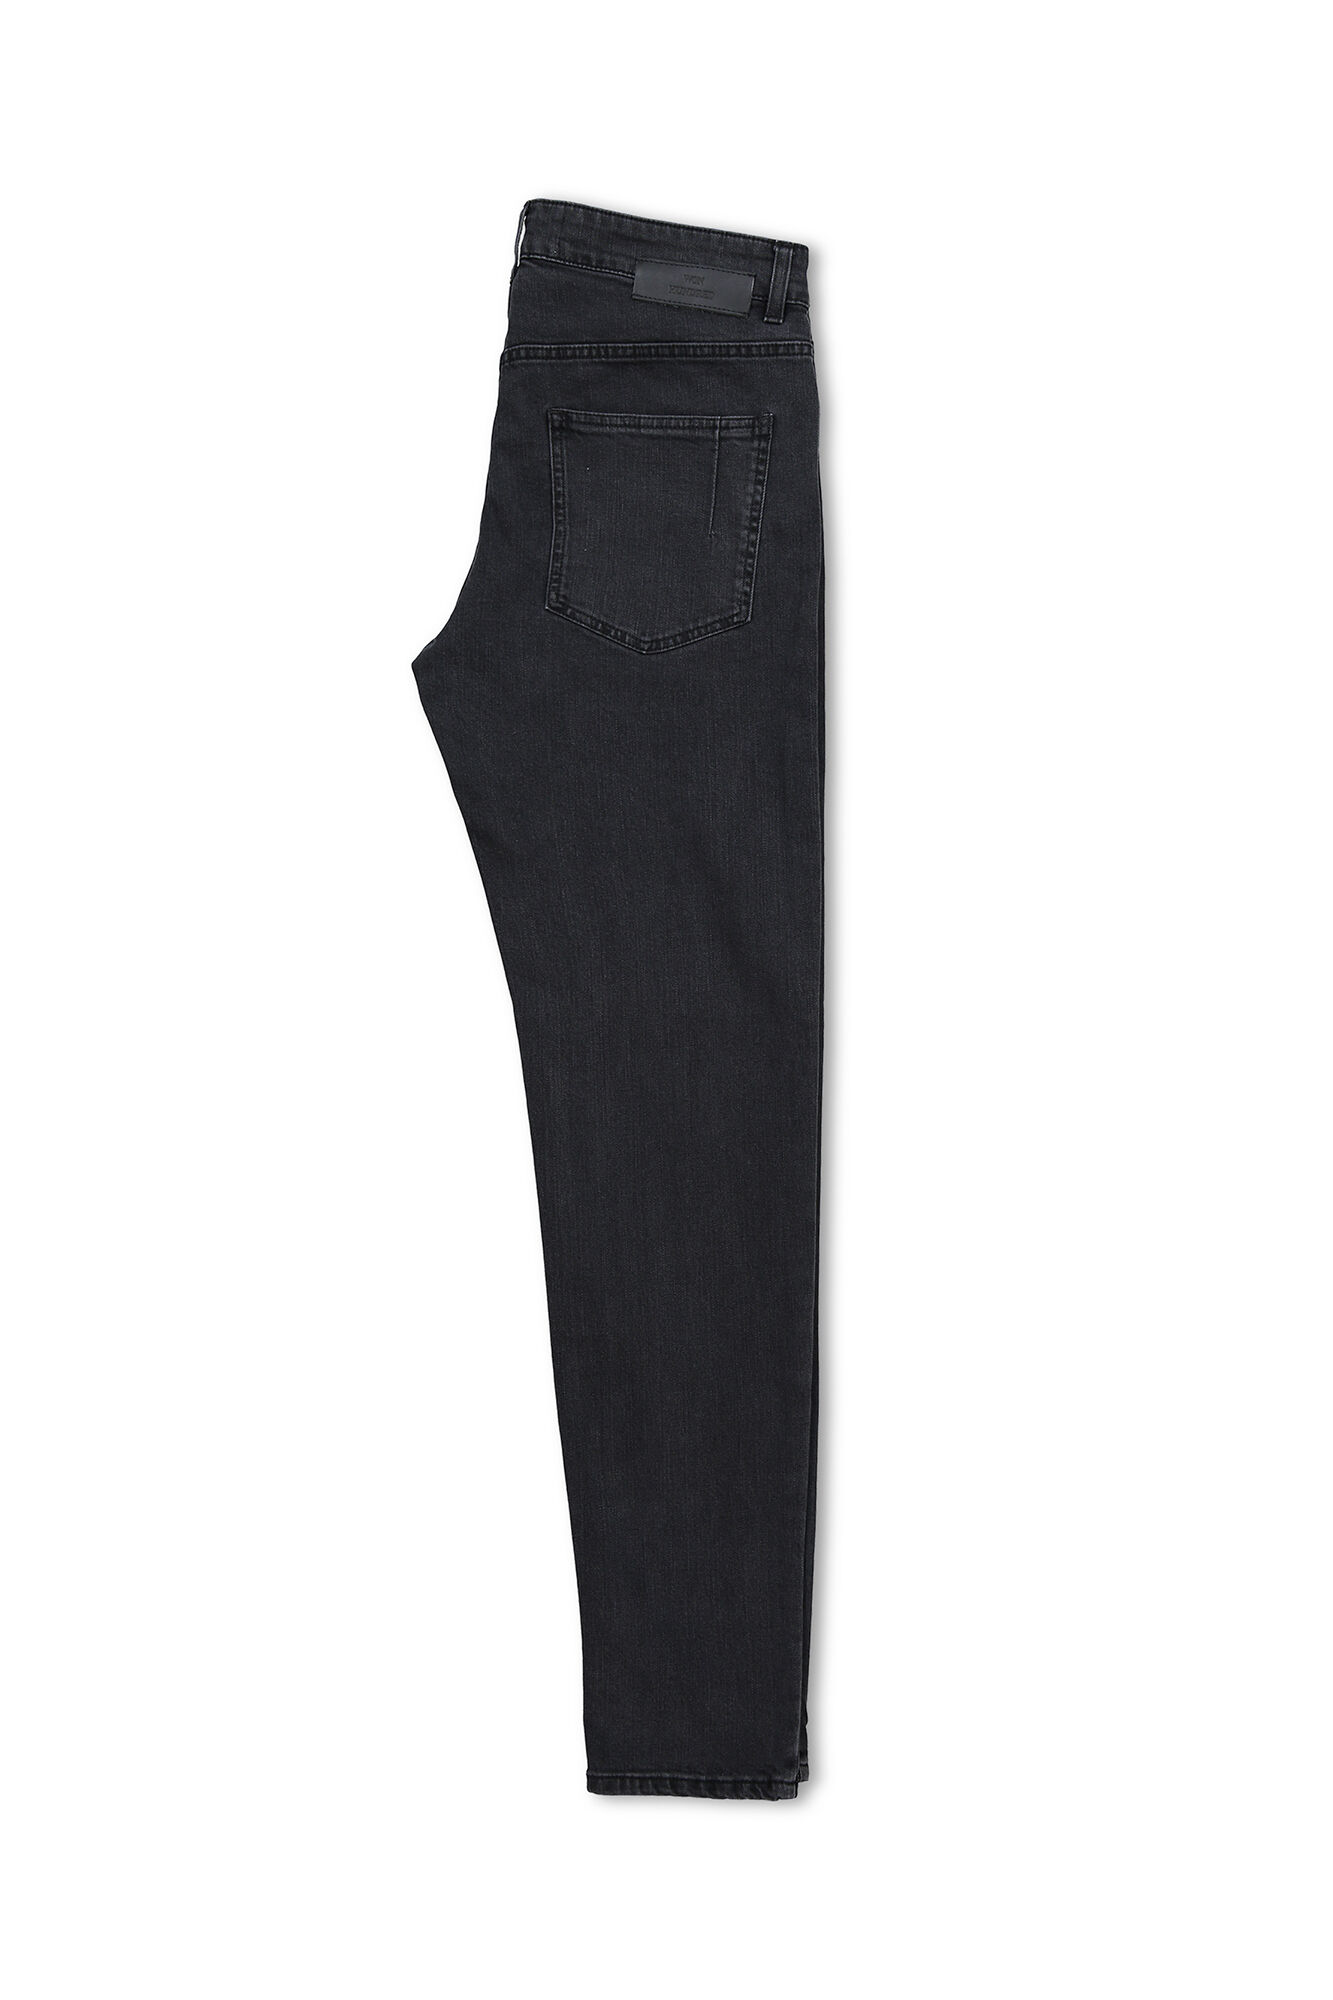 Dean New 15104, CHARCOAL